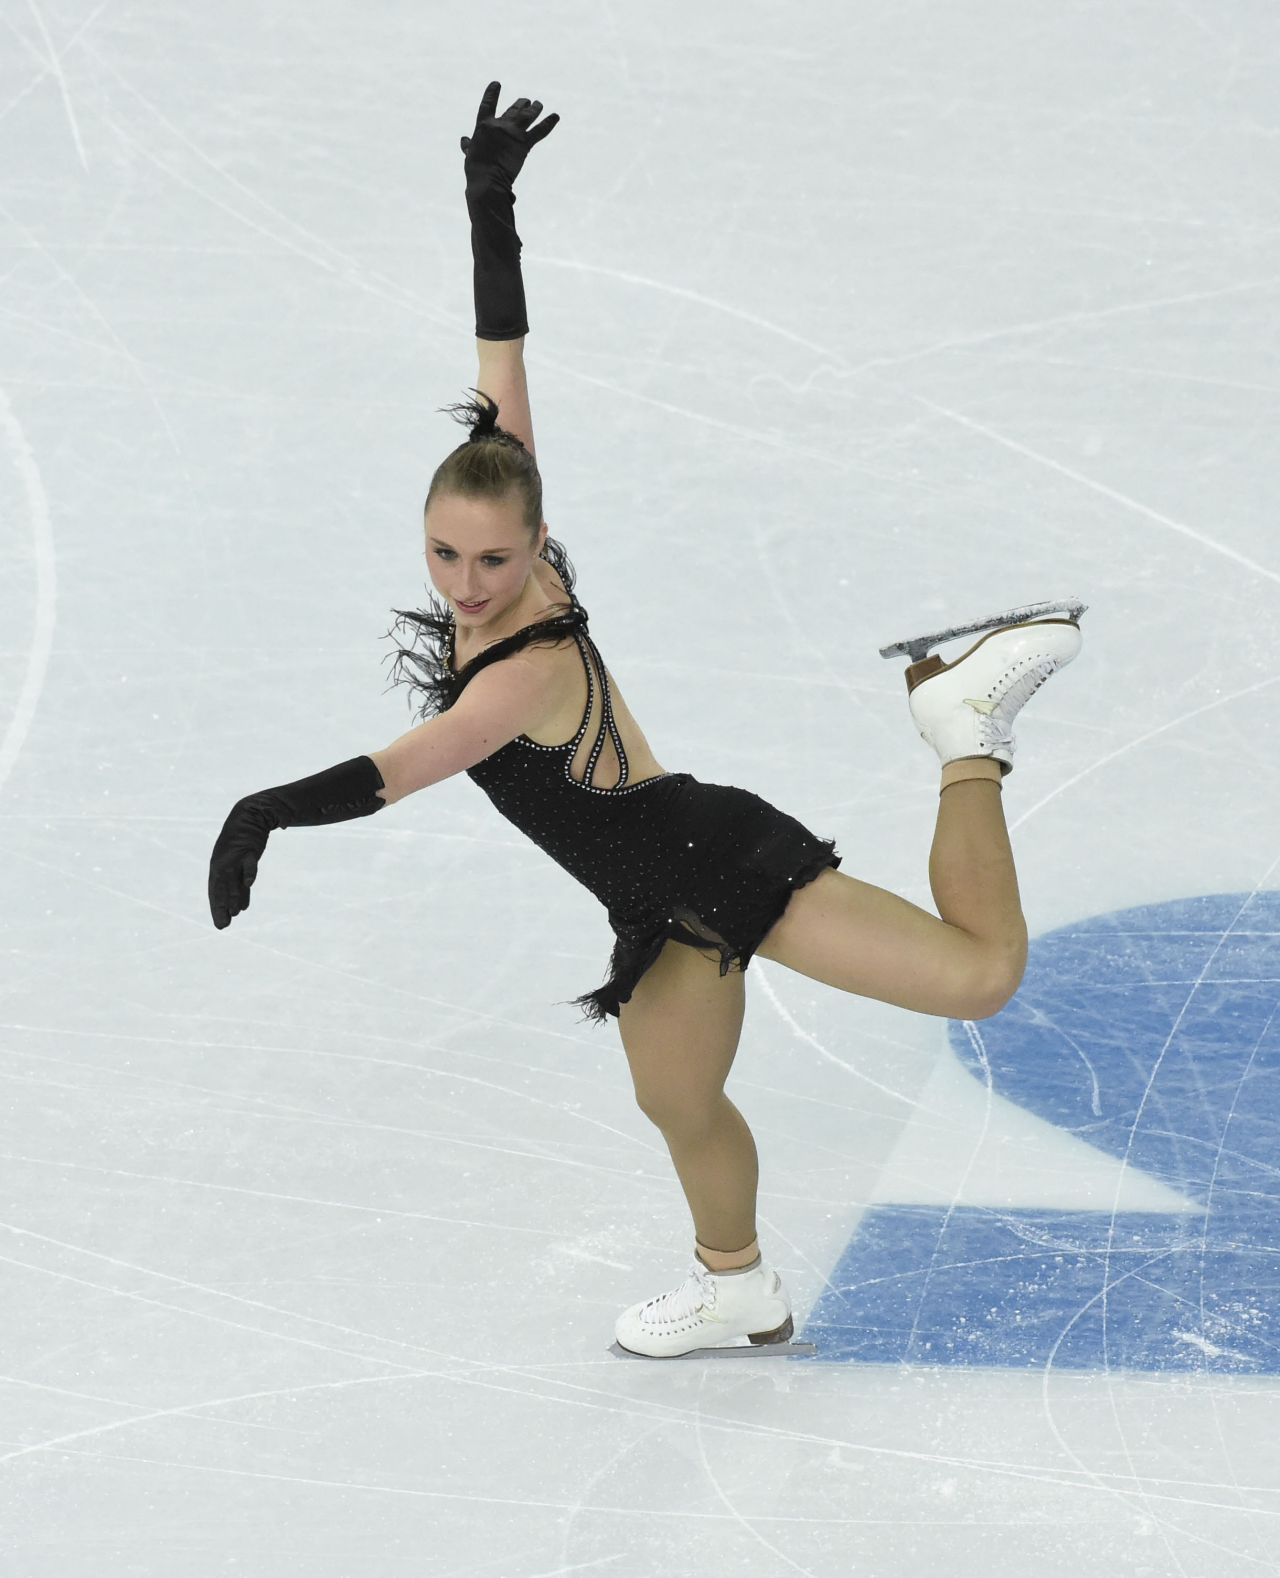 Nathalie Weinzierl - Sochi 2014 Winter Olympics - Team Ladies Short Program